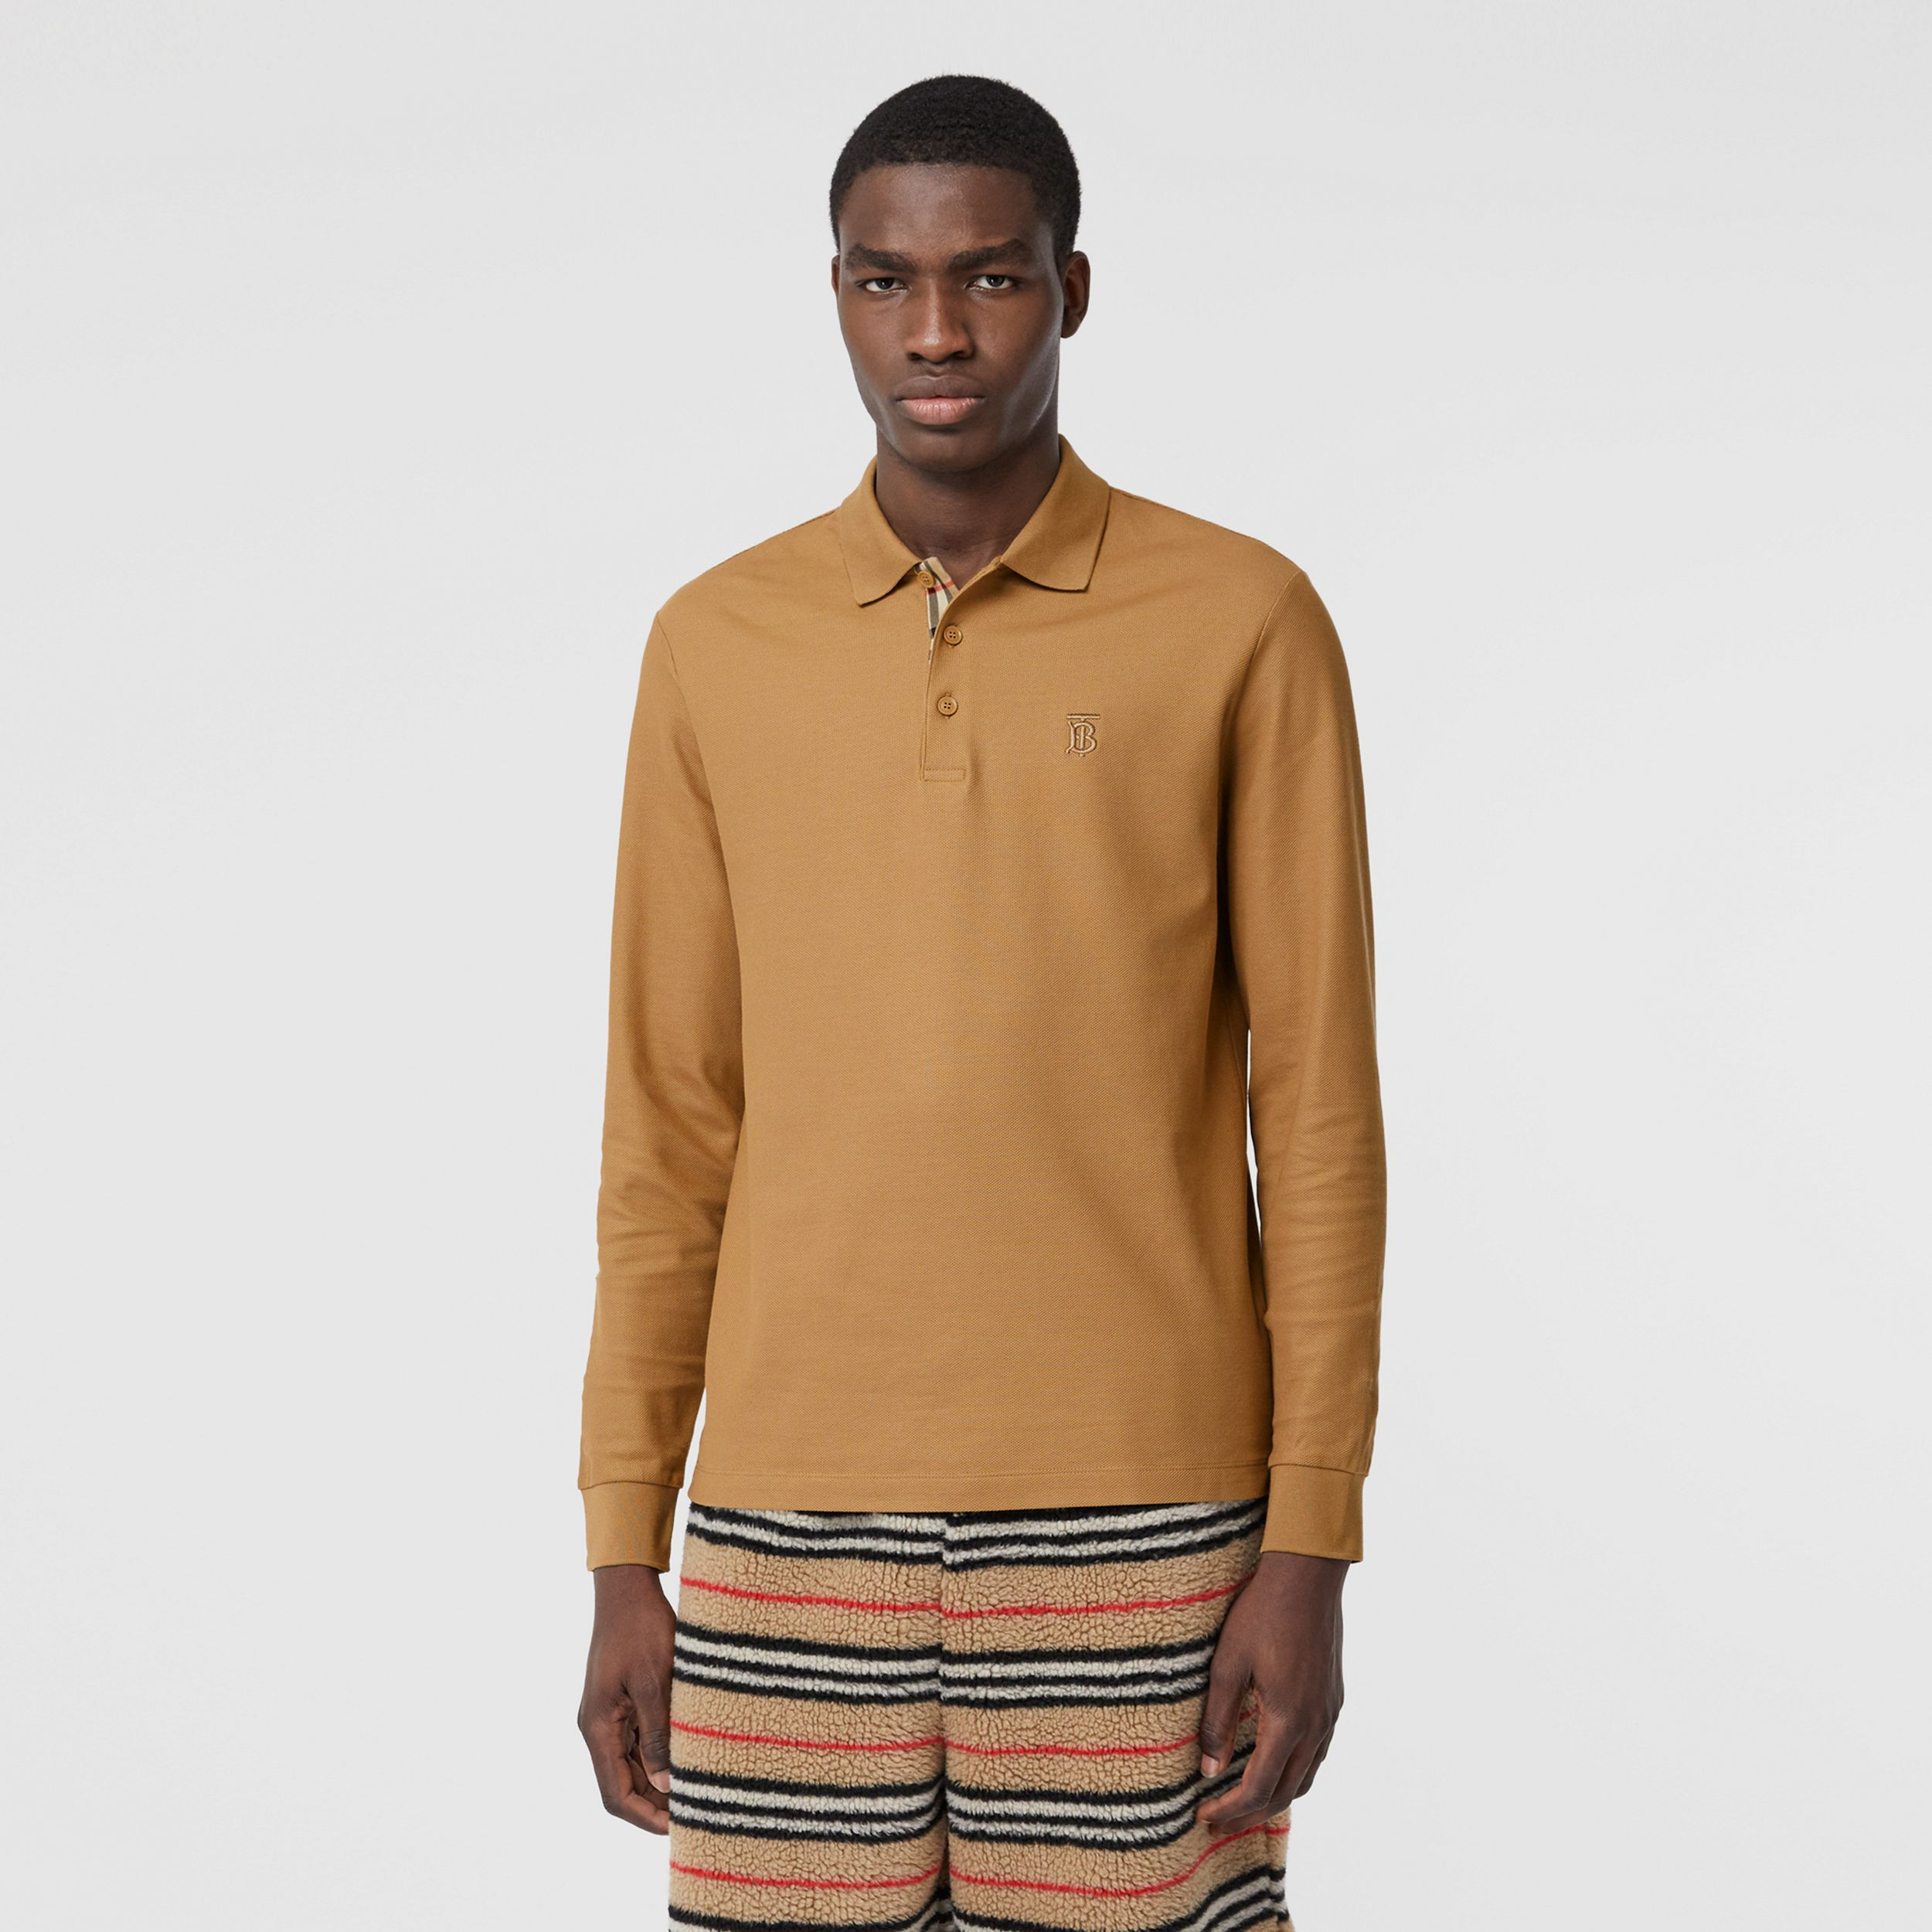 Long-sleeve Monogram Motif Cotton Piqué Polo Shirt in Camel - Men | Burberry - 1